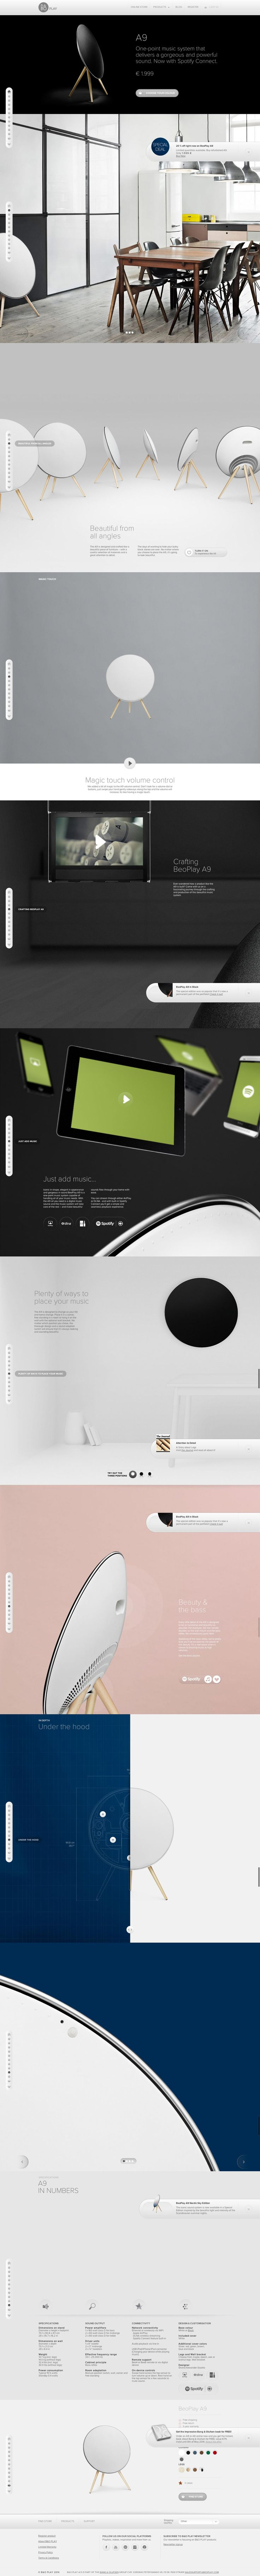 B&O Play Desktop Product Page - http://www.cartrepublic.com/gallery/2014/09/bo-play-desktop-product-page/